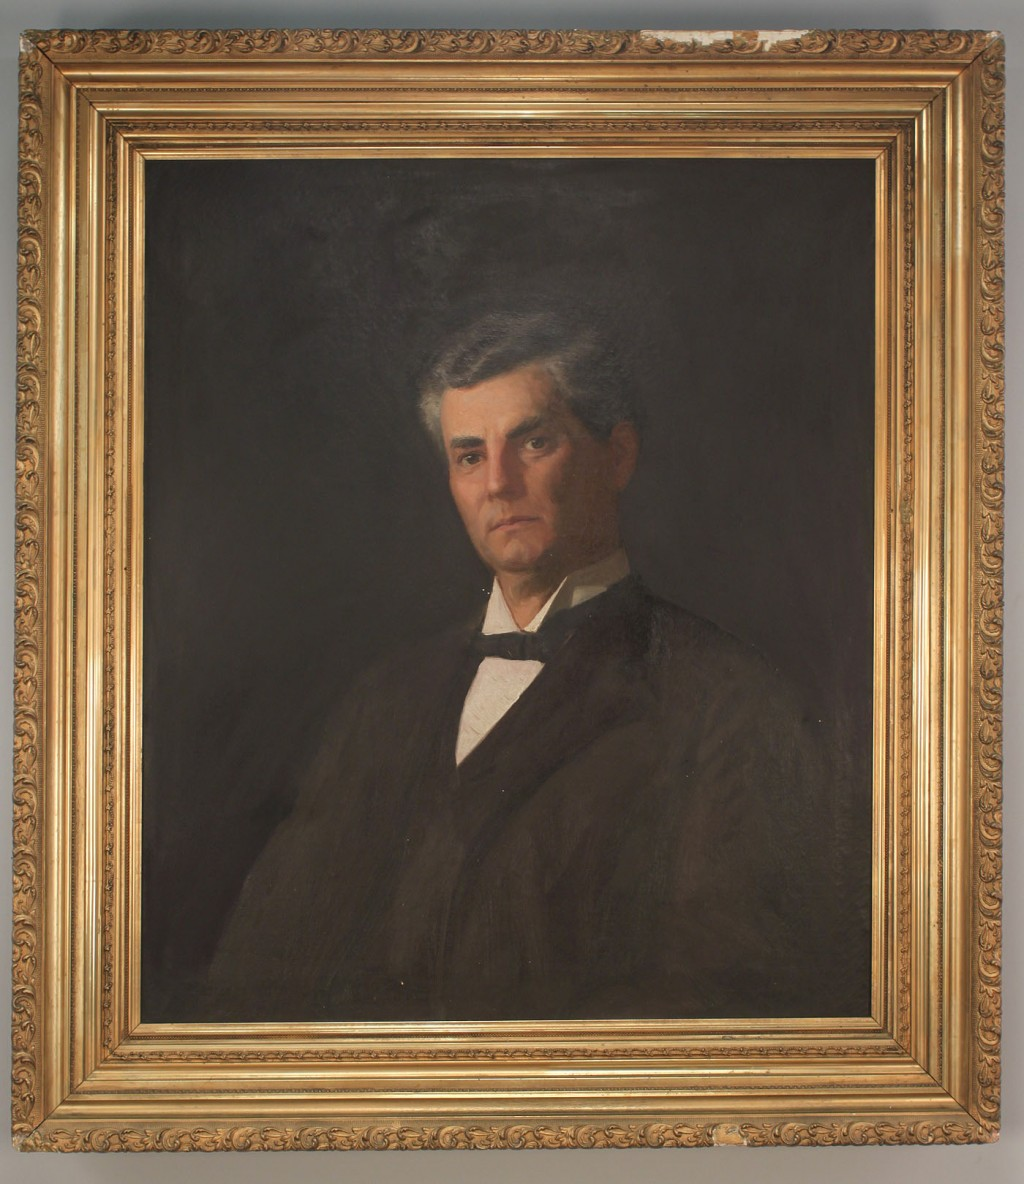 Lot 421: Portrait of Joseph Carlos Rich, Mayor of Mobile